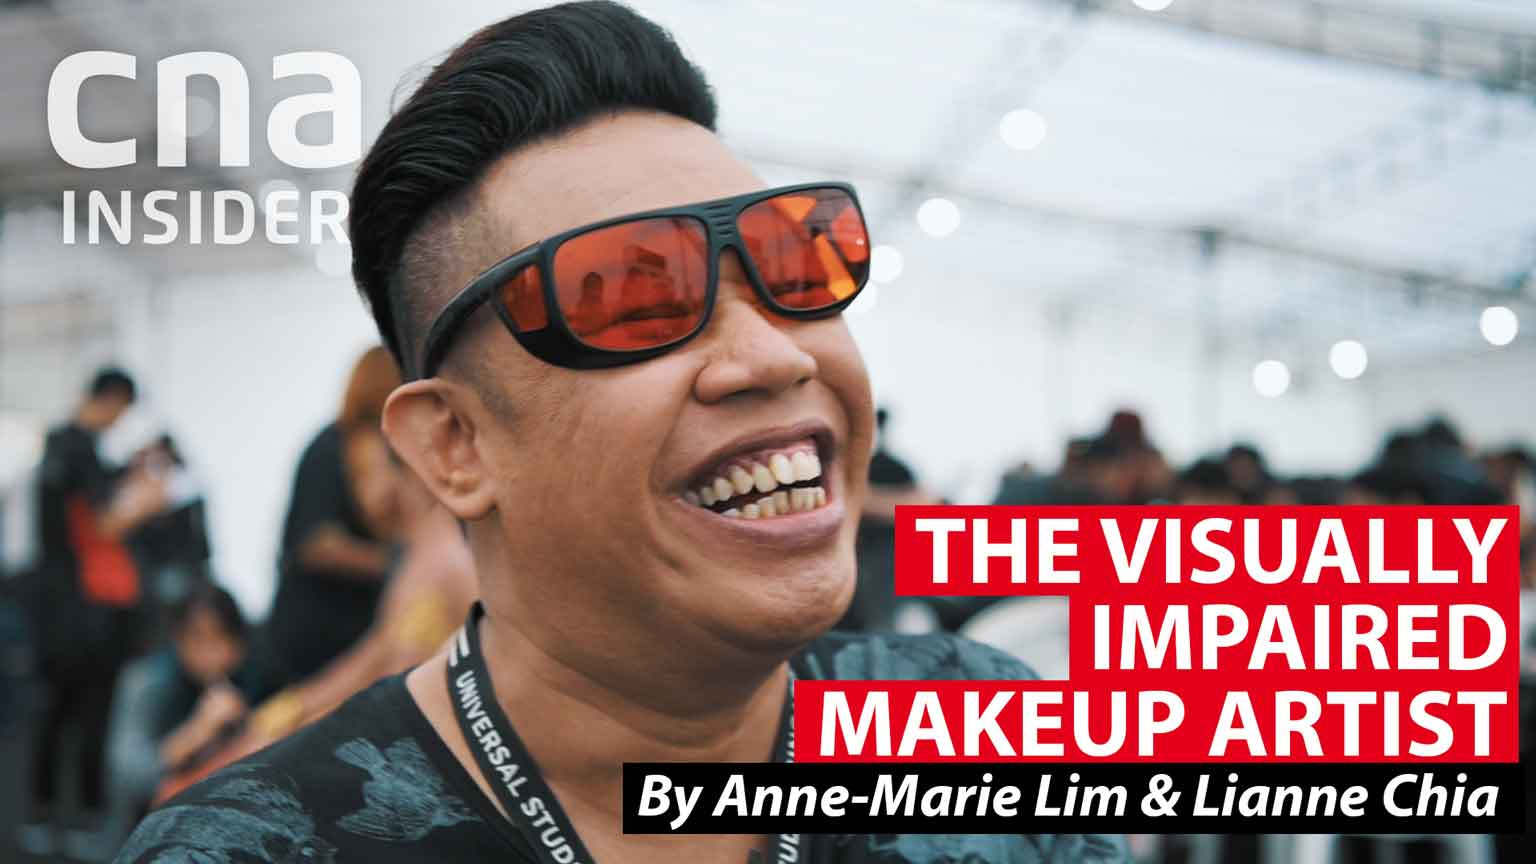 The visually impaired makeup artist